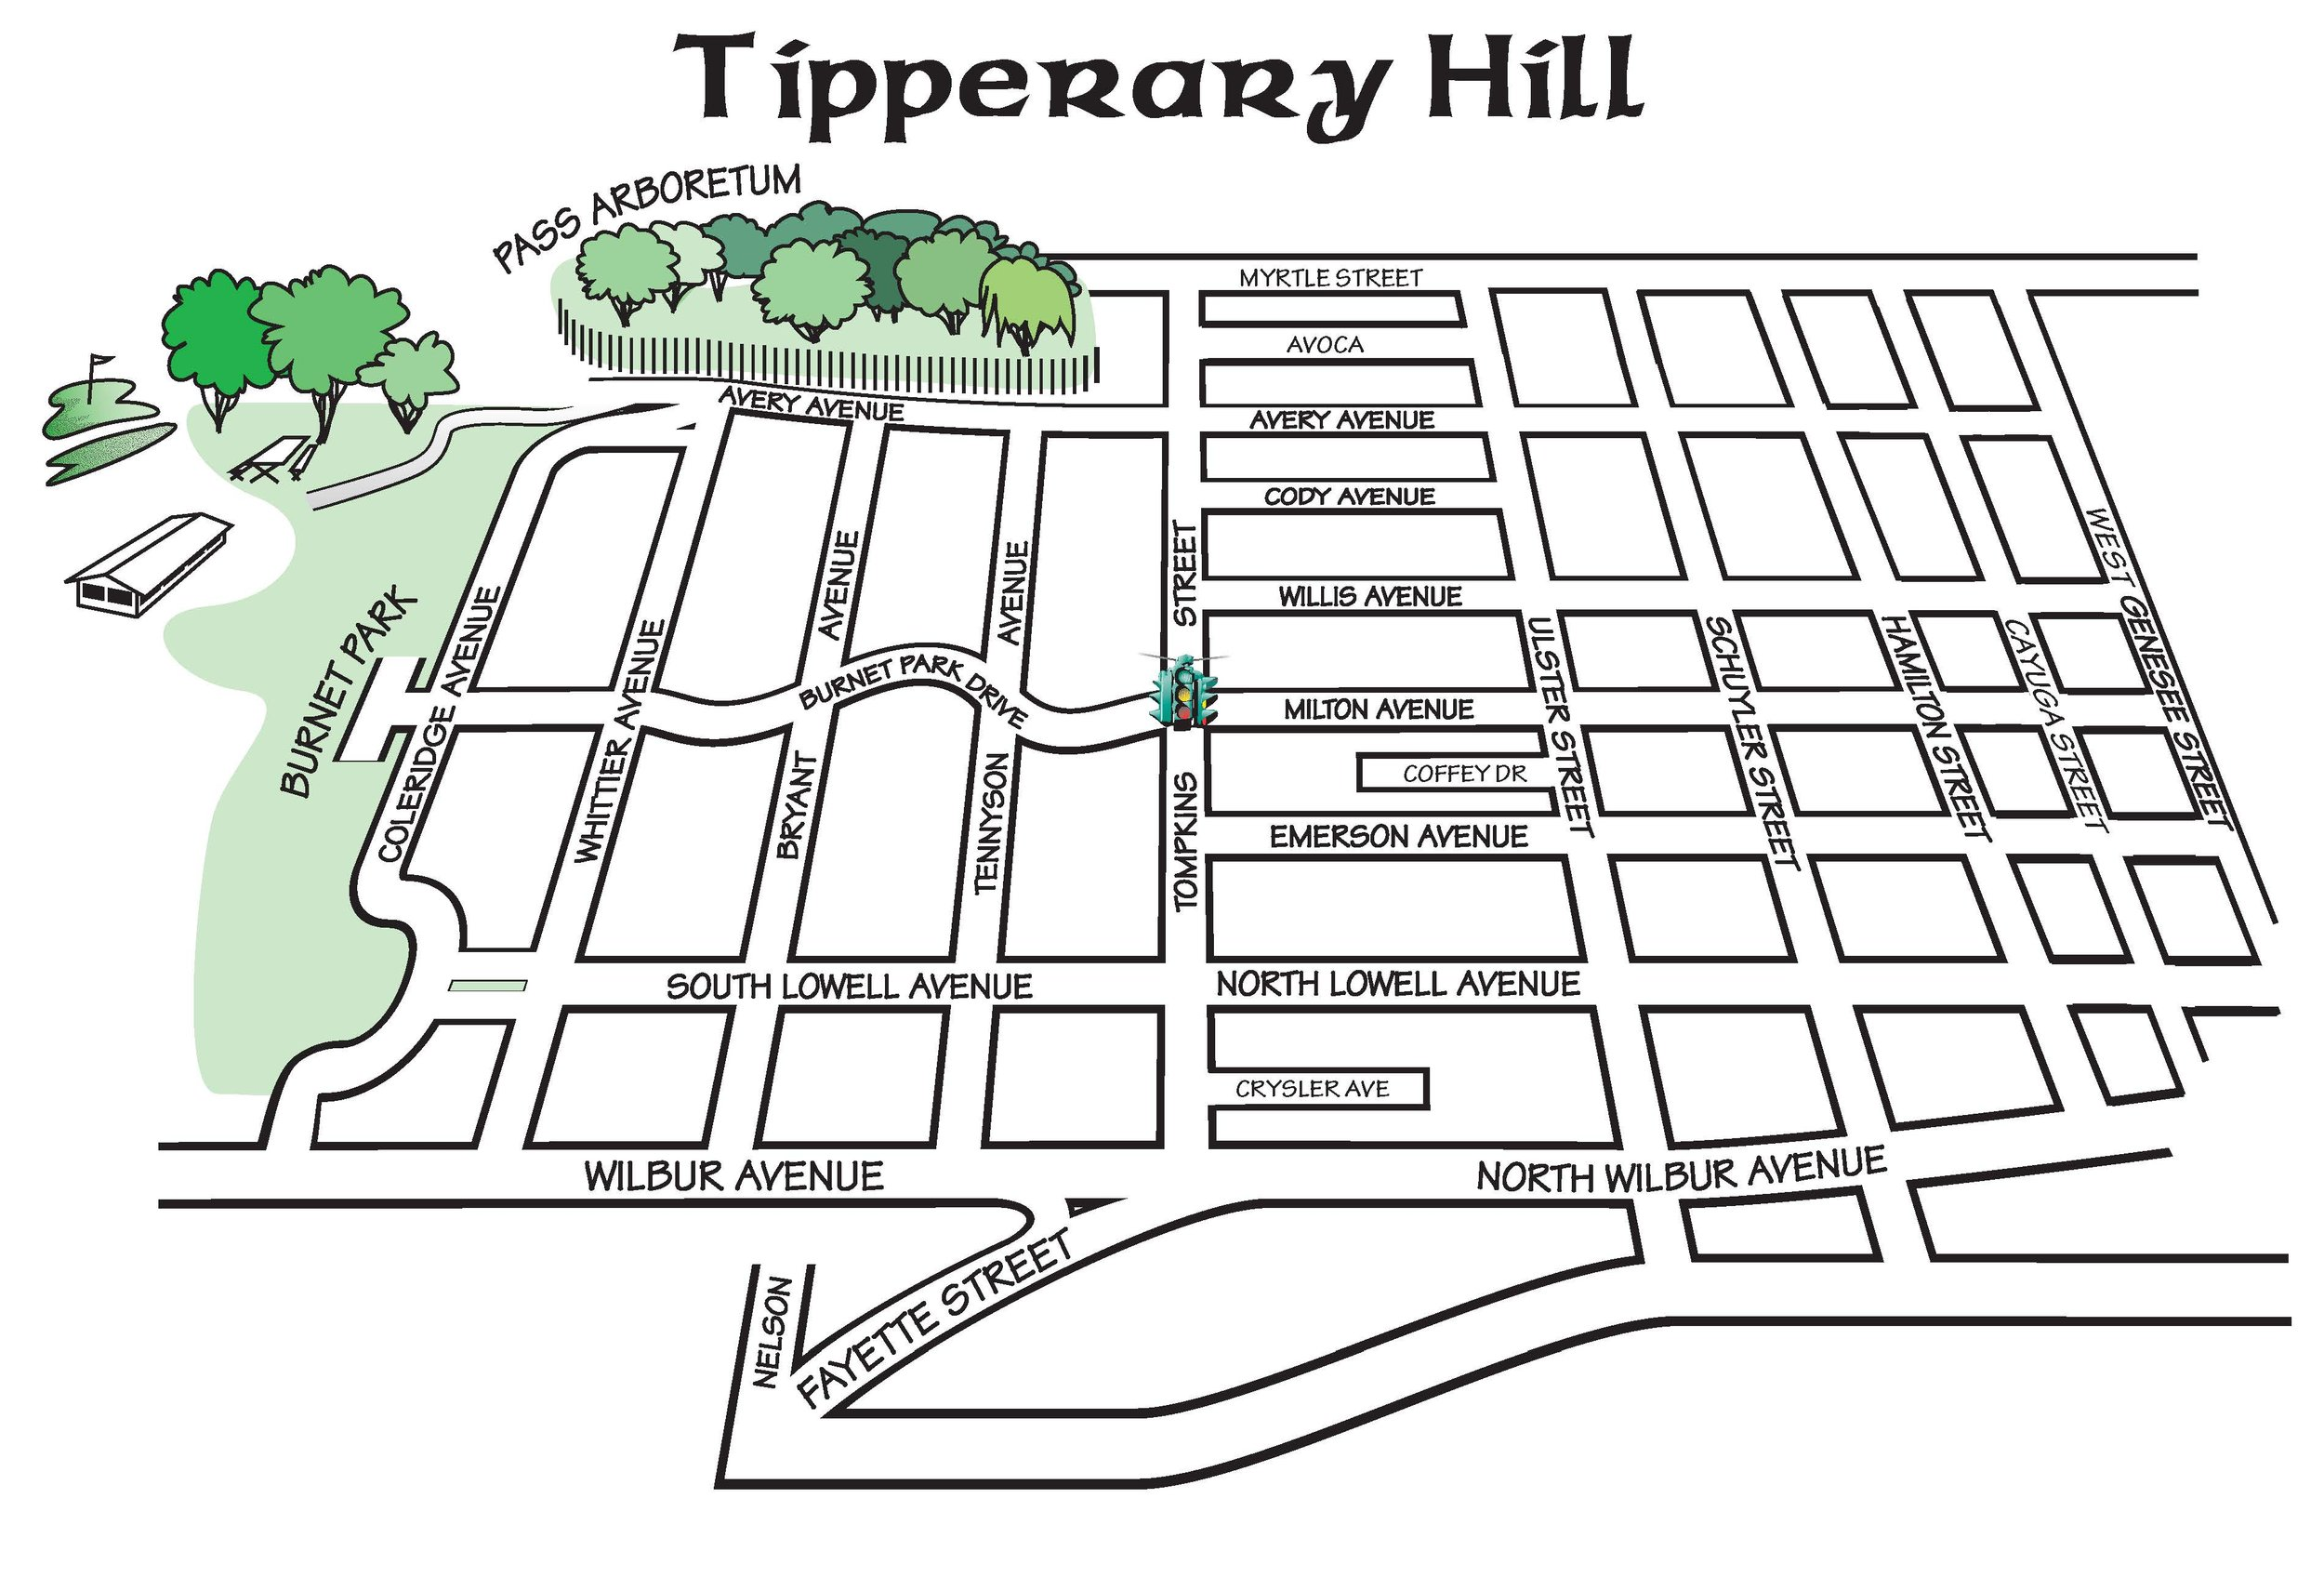 Tipperary Hill Neighborhood Map (click to enlarge)